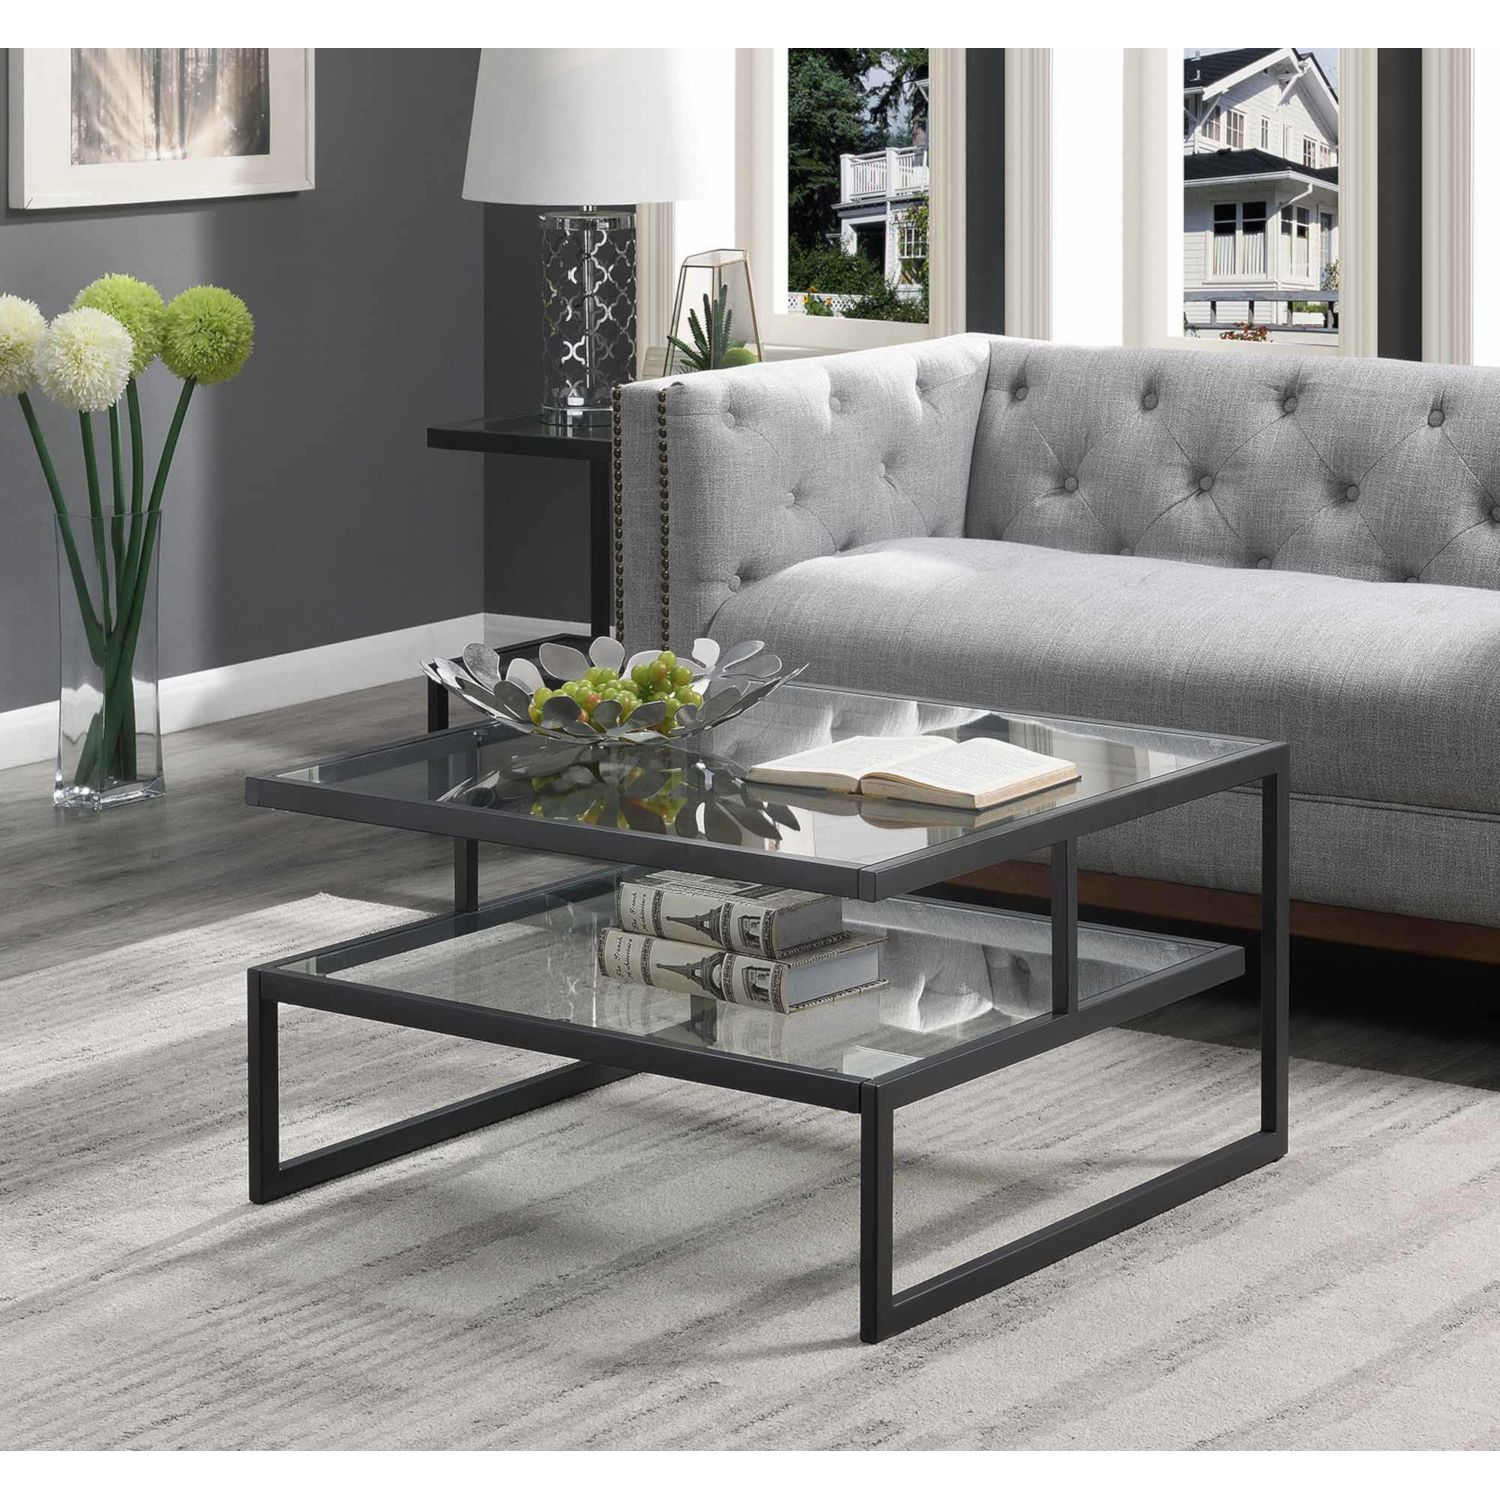 Convenience Concepts Royal Crest Charcoal Gray Coffee Table With Clear Glass 133182glcgy Bellacor In 2021 Coffee Table Glass Table Living Room Convenience Concepts [ 1500 x 1500 Pixel ]